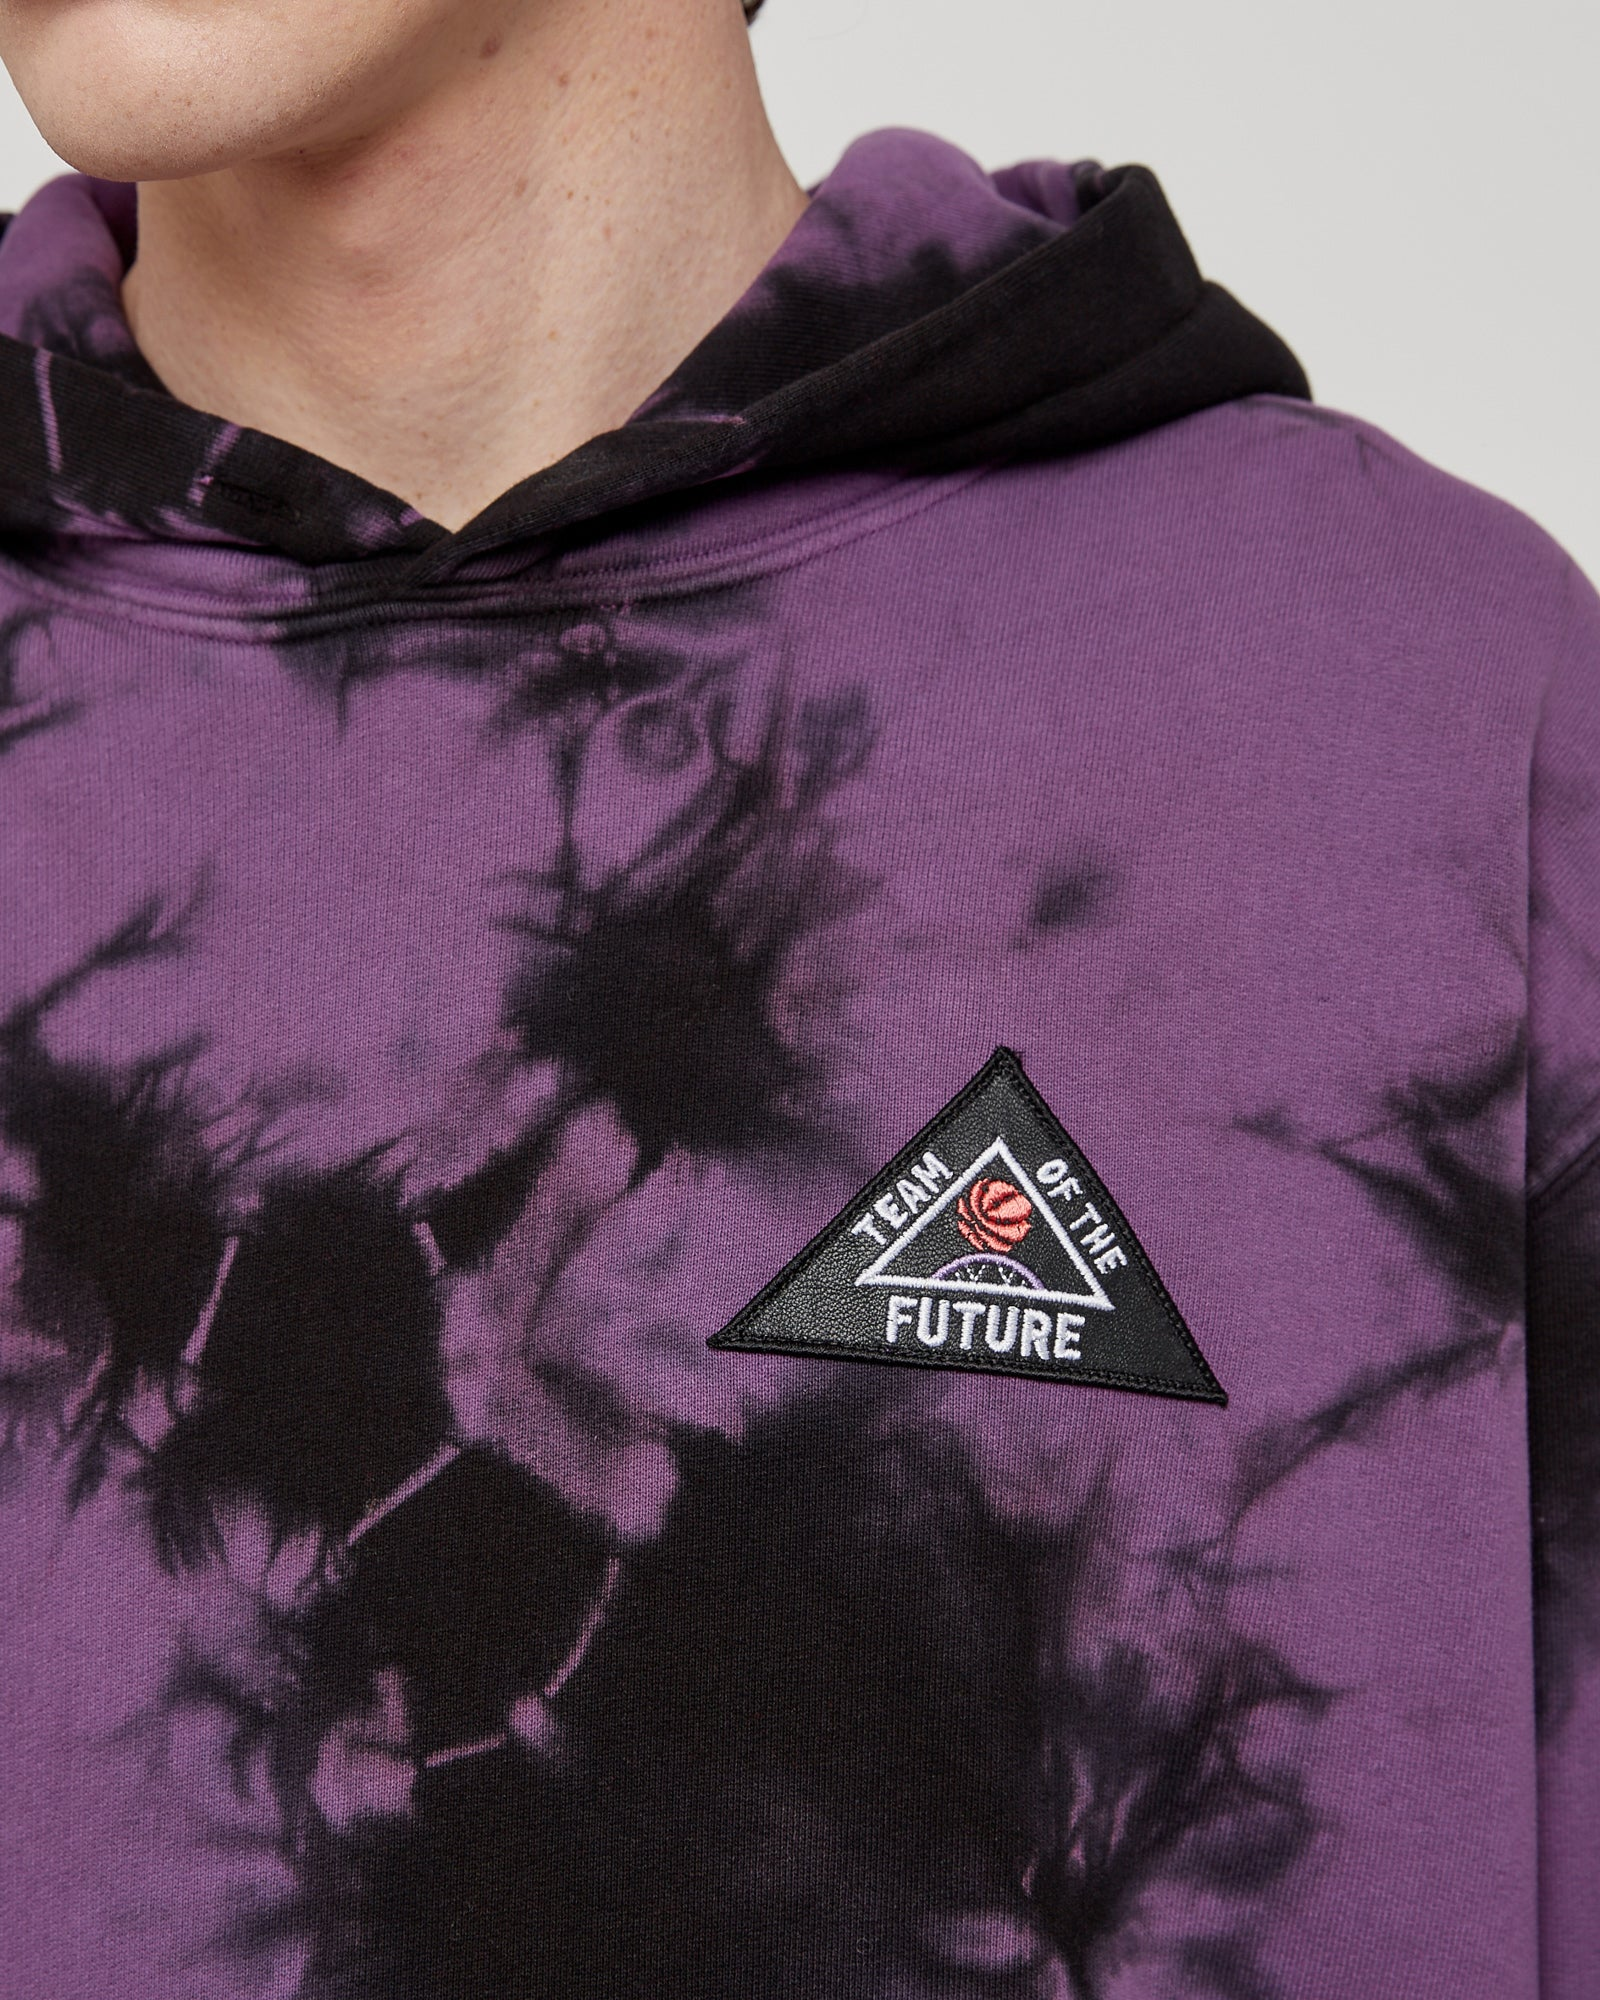 Team Of The Future Hoodie in Black & Fuchsia